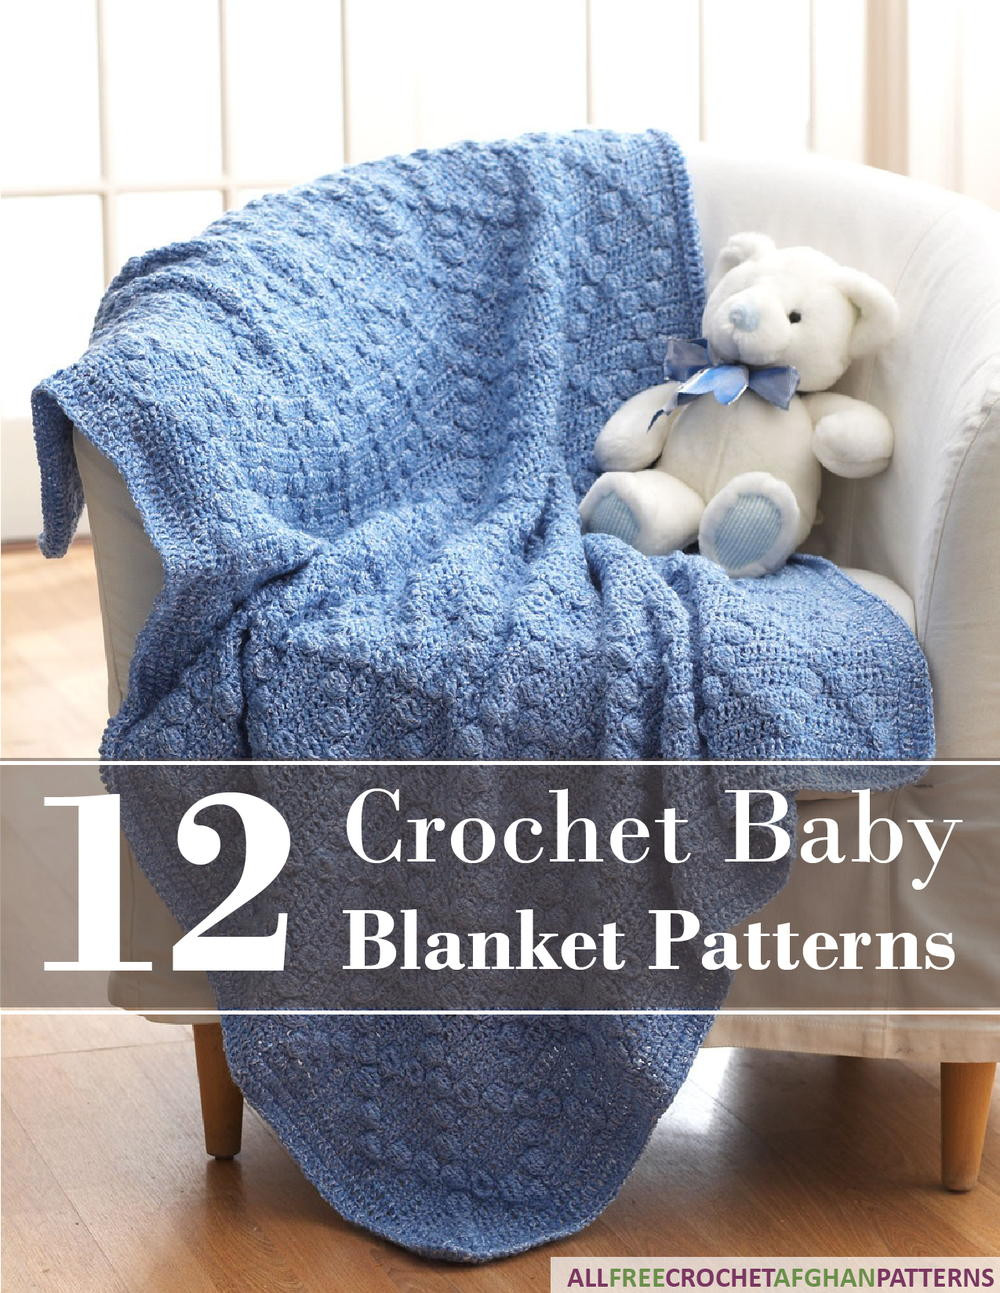 Baby Boy Crochet Blanket Patterns Elegant 12 Crochet Baby Blanket Patterns Free Ebook Of Baby Boy Crochet Blanket Patterns New Beautiful Baby Boy Blanket Crochet Pattern for Pram